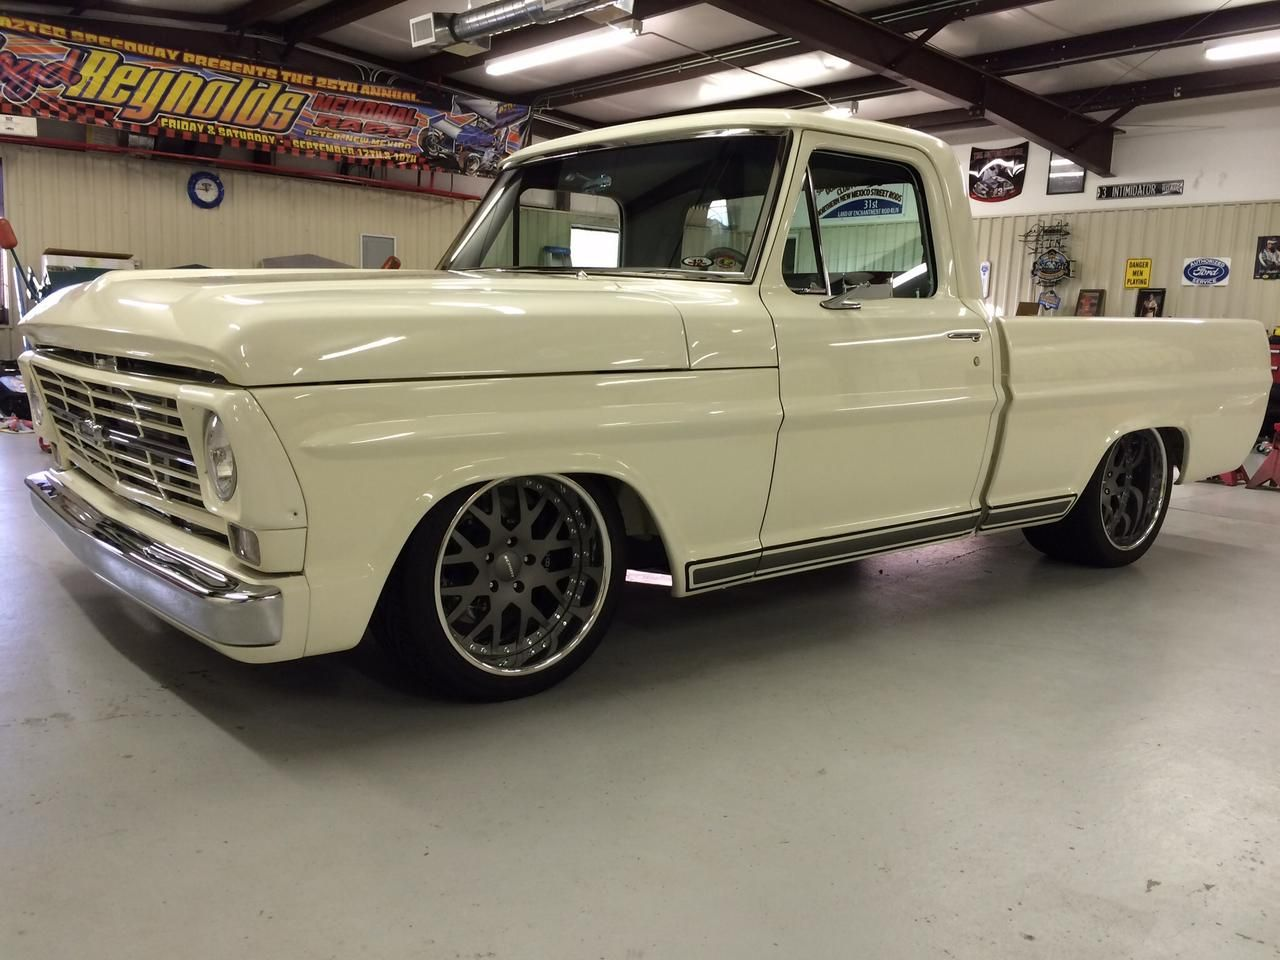 69 f100 427 sohc pro touring build page 36 ford truck enthusiasts forums